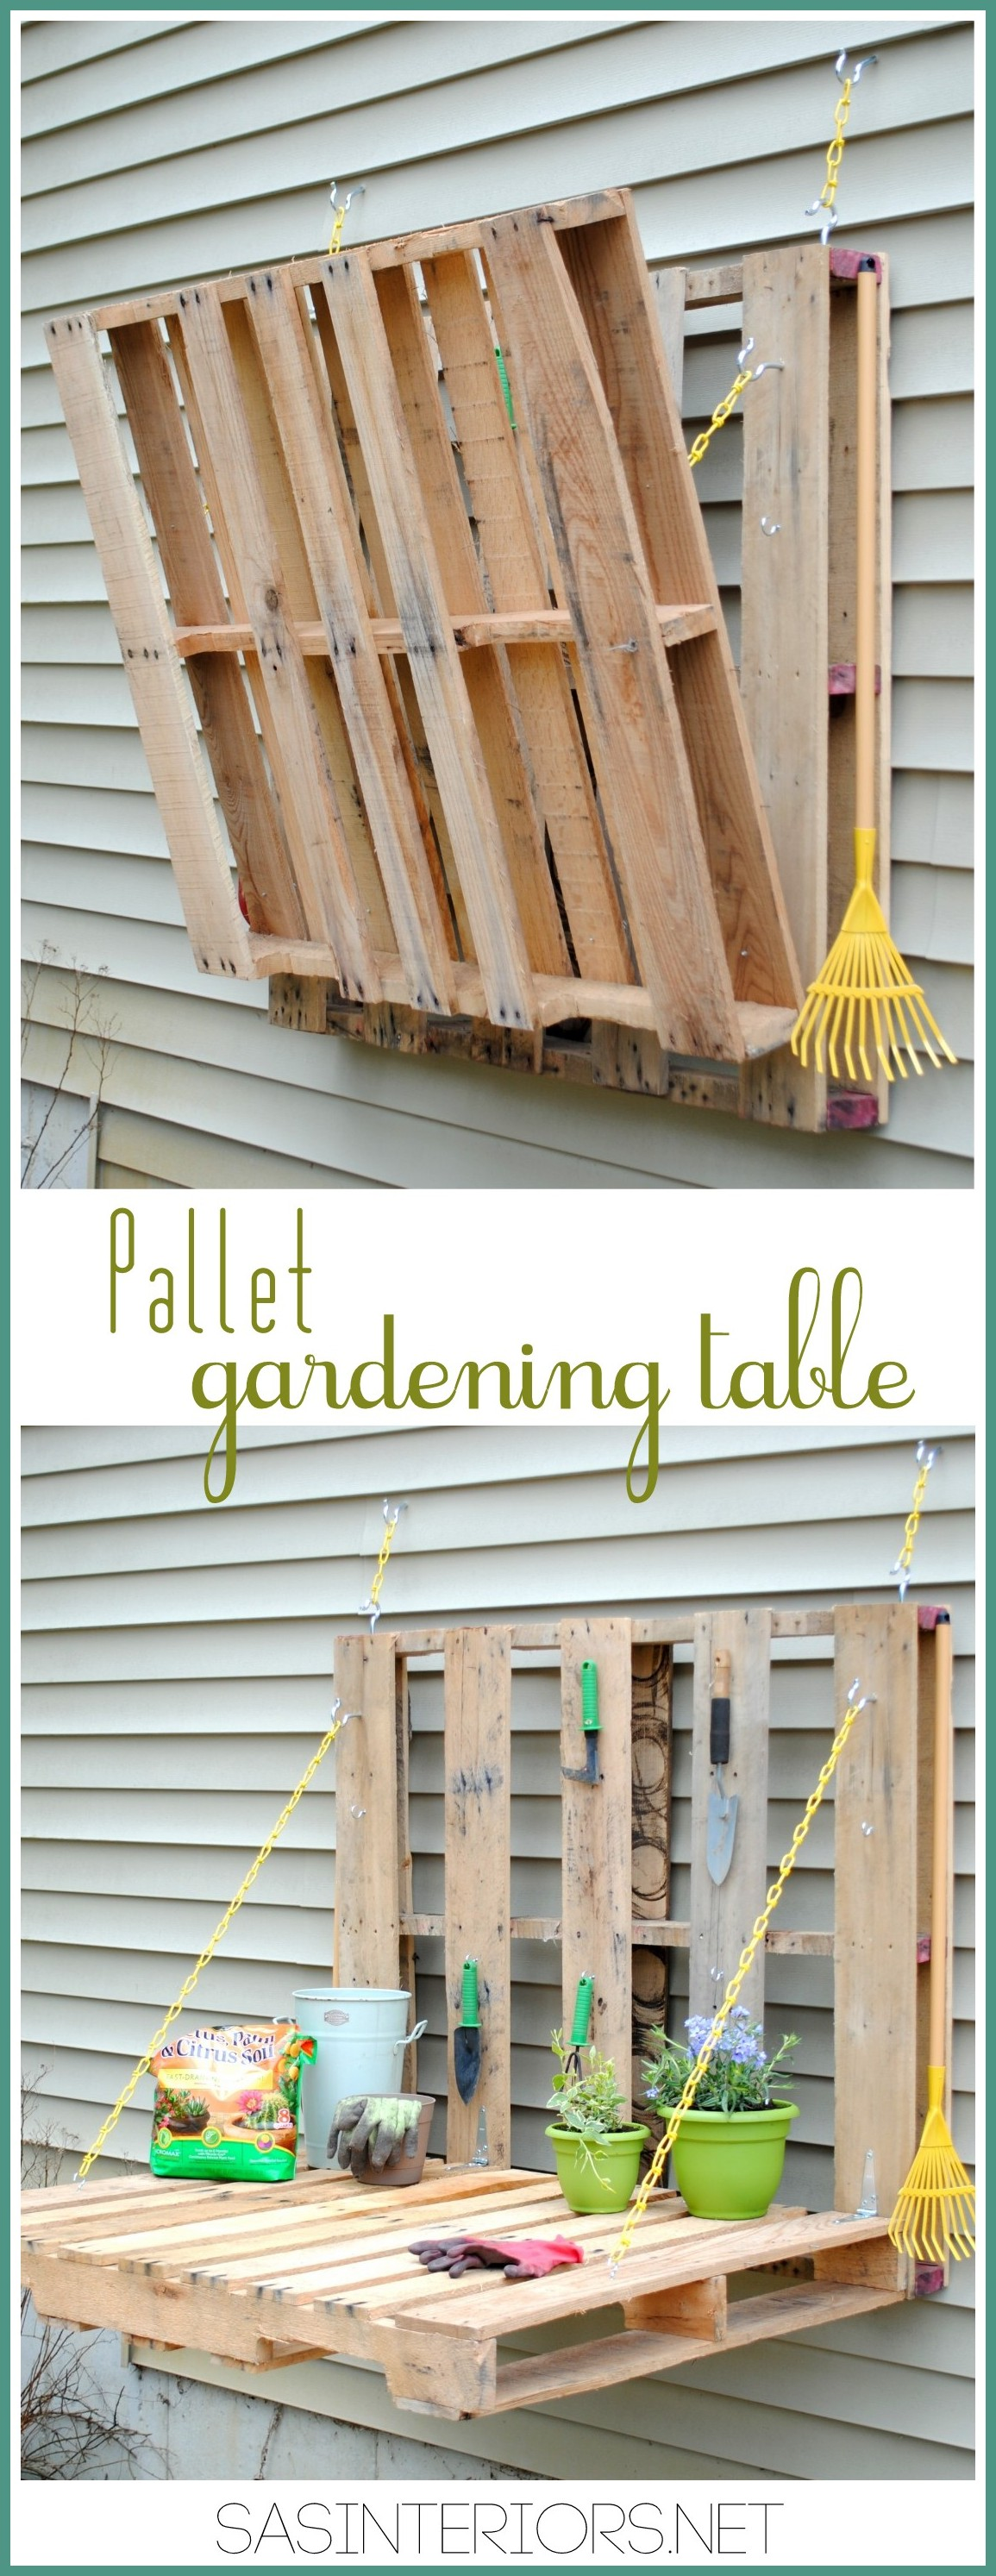 shipping pallet furniture ideas. VIEW IN GALLERY DIY Pallet Gardening Table Shipping Furniture Ideas O